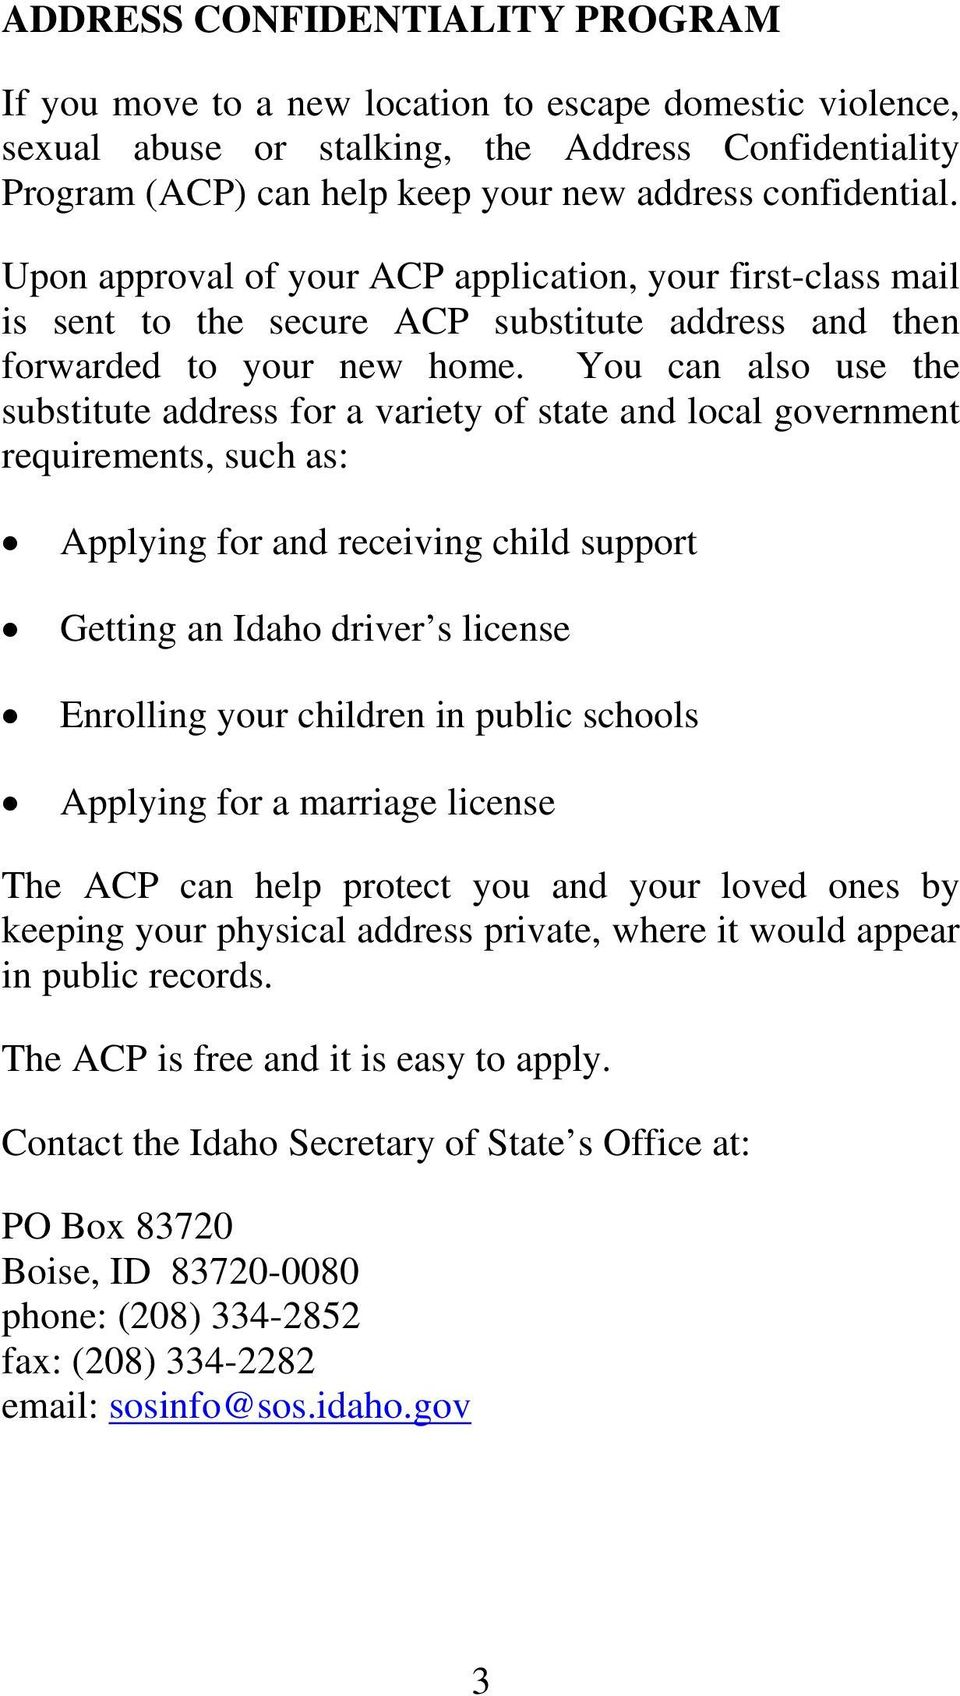 You can also use the substitute address for a variety of state and local government requirements, such as: Applying for and receiving child support Getting an Idaho driver s license Enrolling your